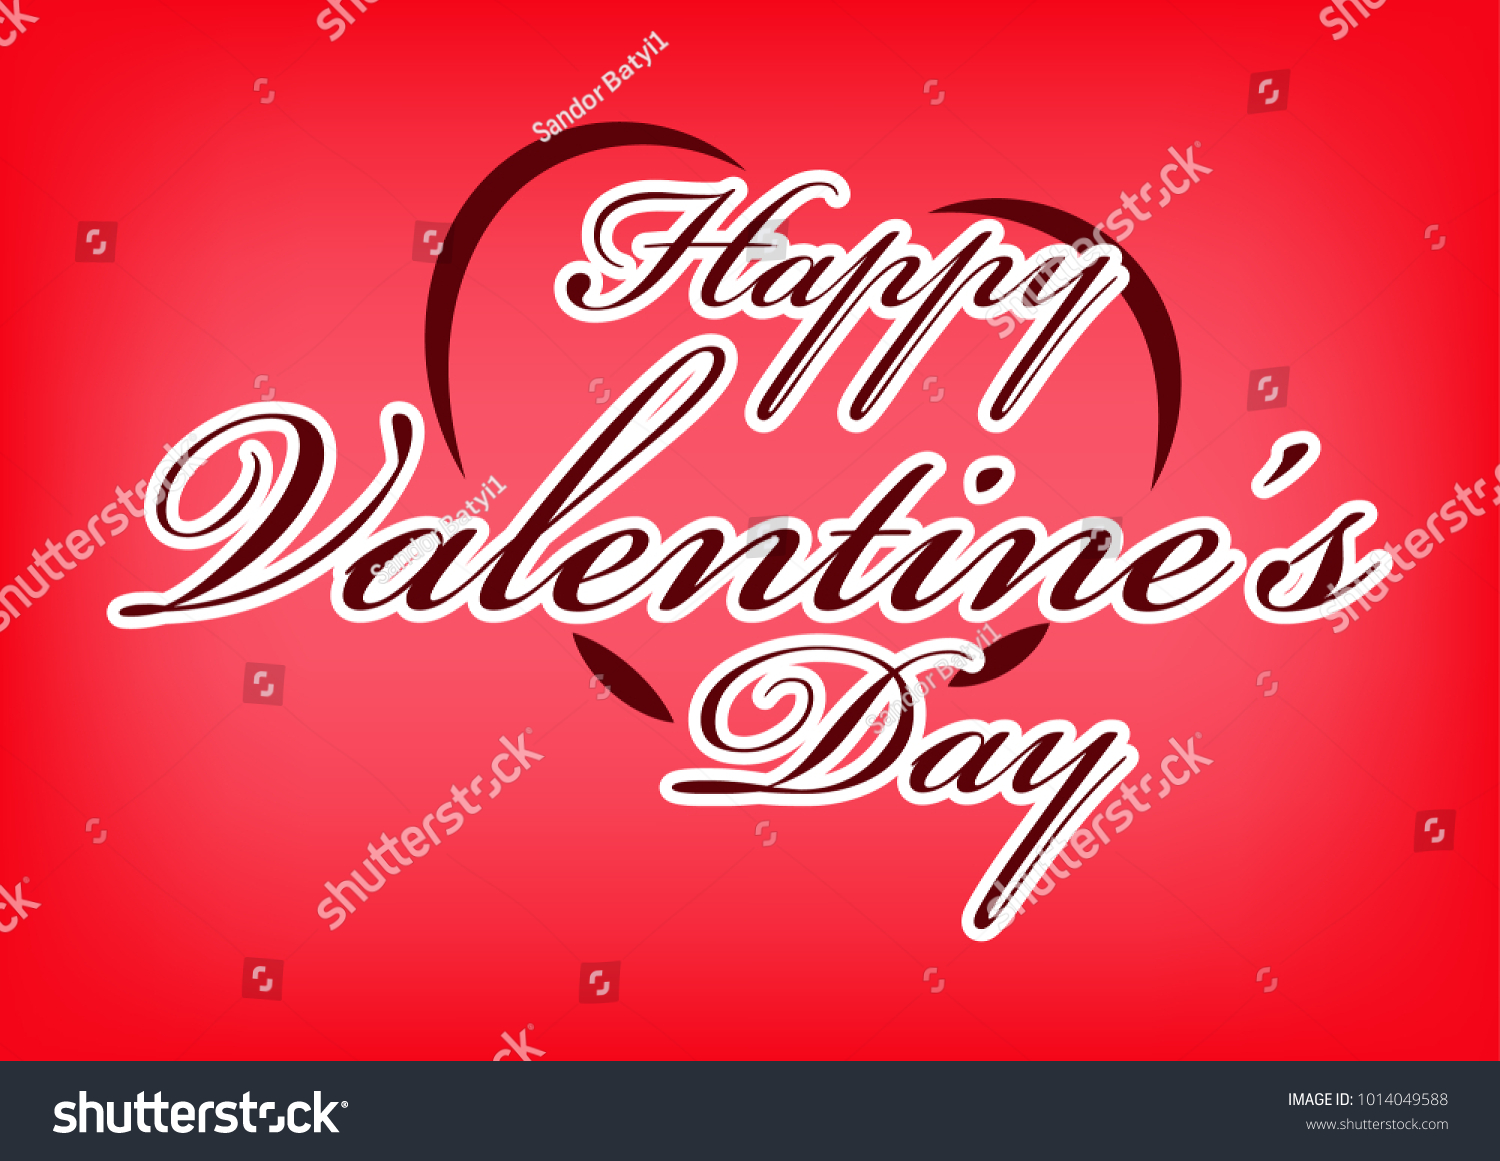 Valentines day sticker valentines day card stock vector 1014049588 valentines day sticker valentines day card greeting cards love kristyandbryce Choice Image